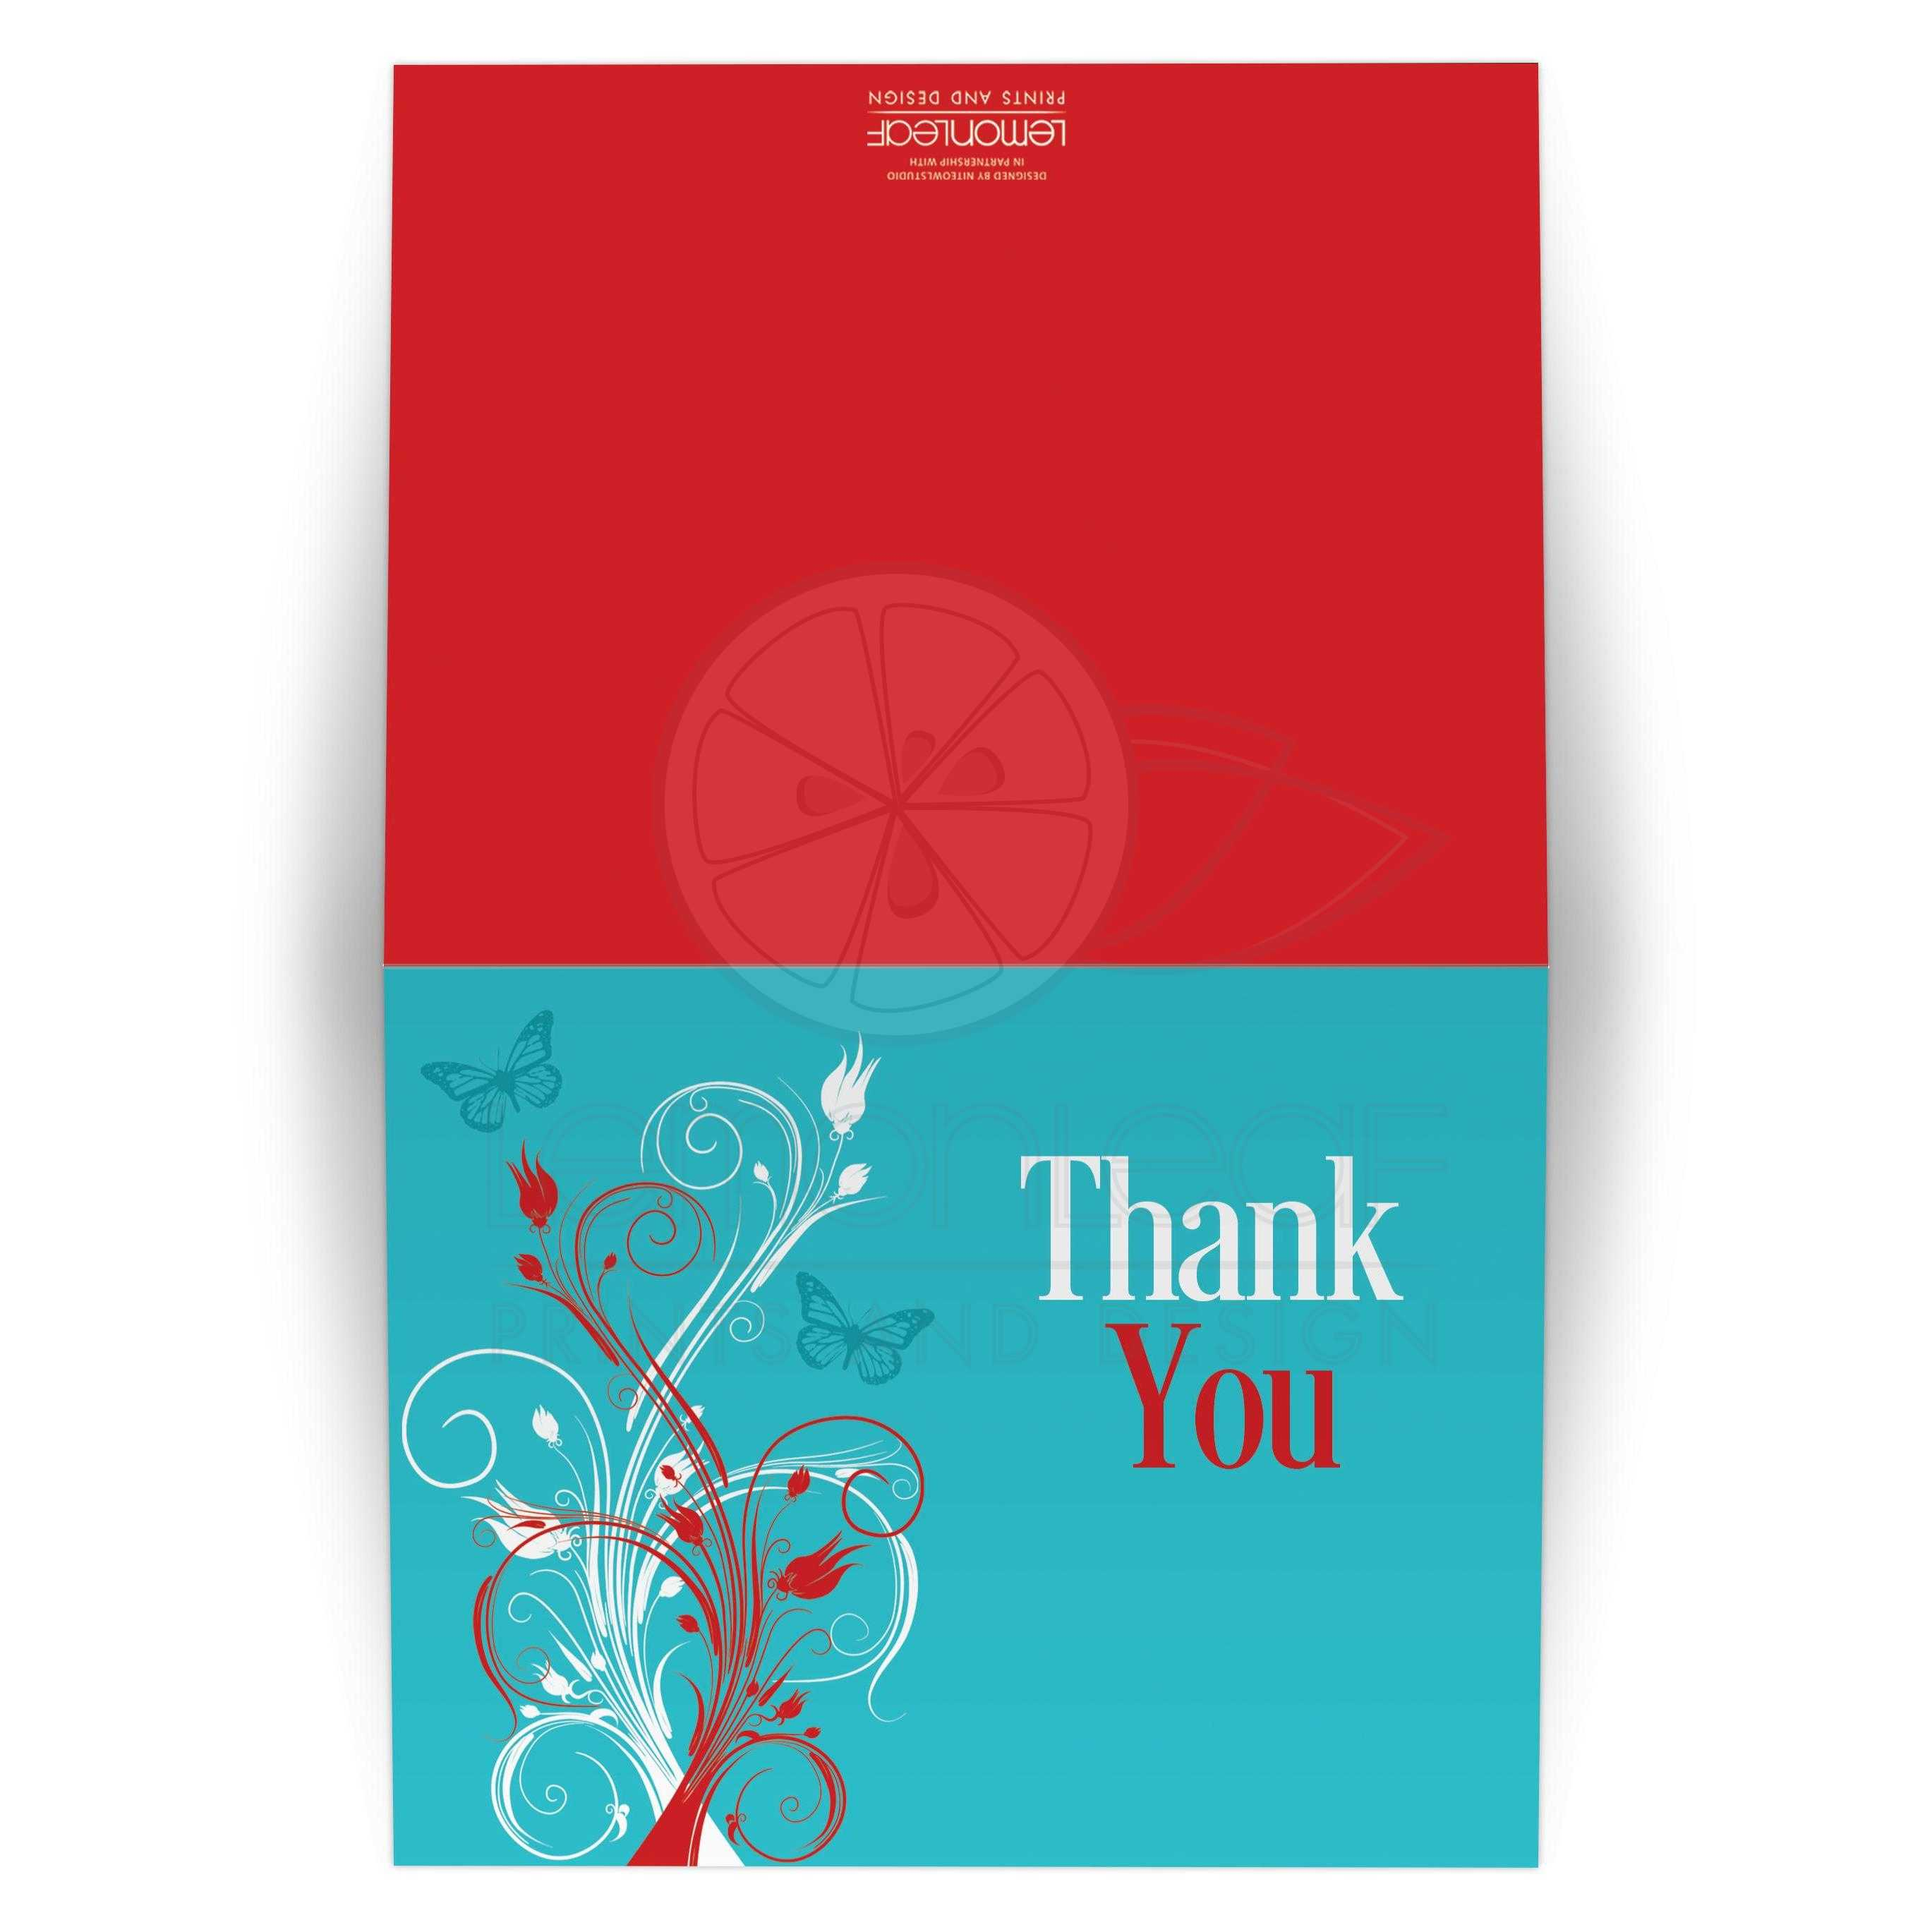 Wedding Thank You Card 2 | Turquoise, Red, White Floral, Butterflies